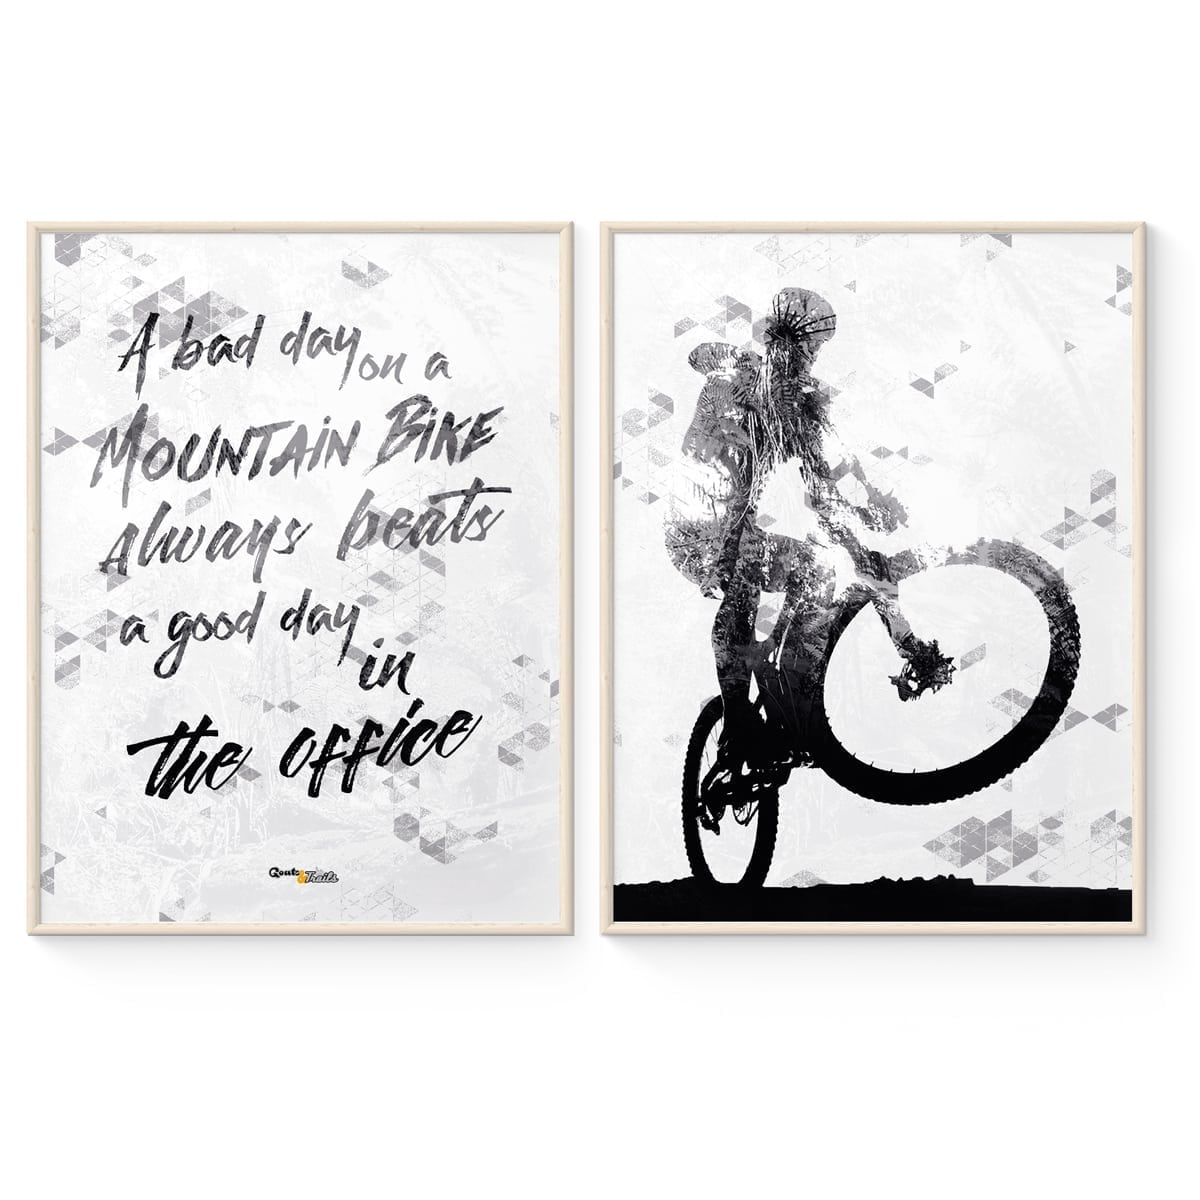 Mountainbike Statement Plakater i Sort/Hvid fra Goats & Trails